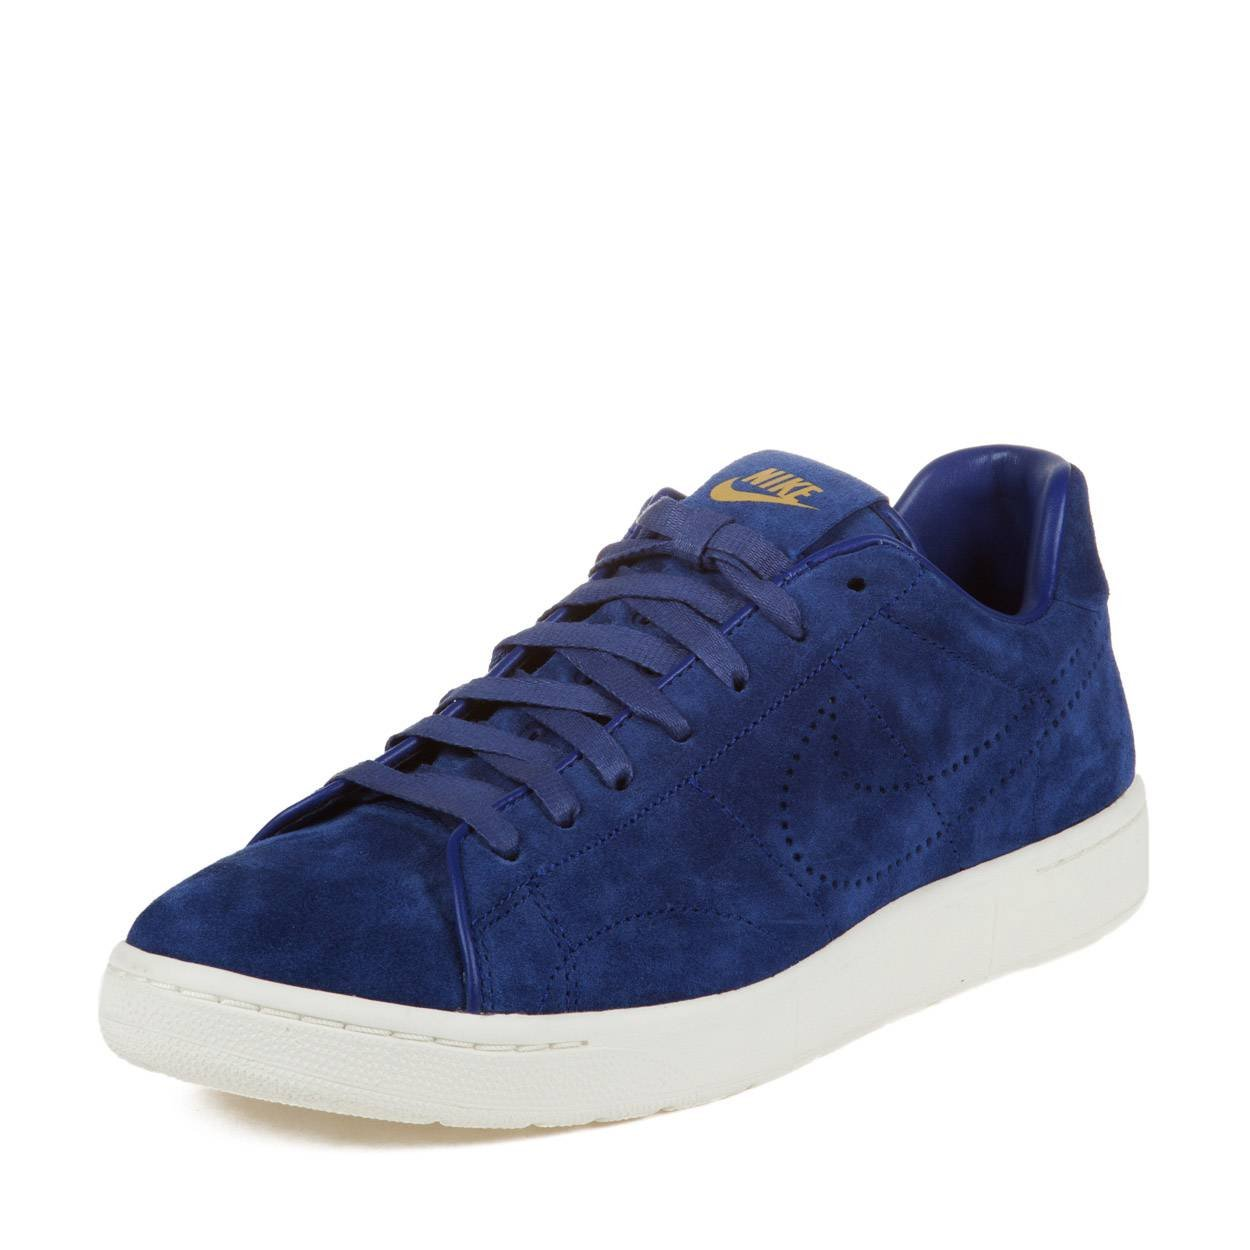 official photos ed29d 19ce9 Amazon.com   Nike Mens Tennis Classic PDM SP Deep Royal Blue Metallic Gold  Suede Athletic Sneakers Size 10   Running